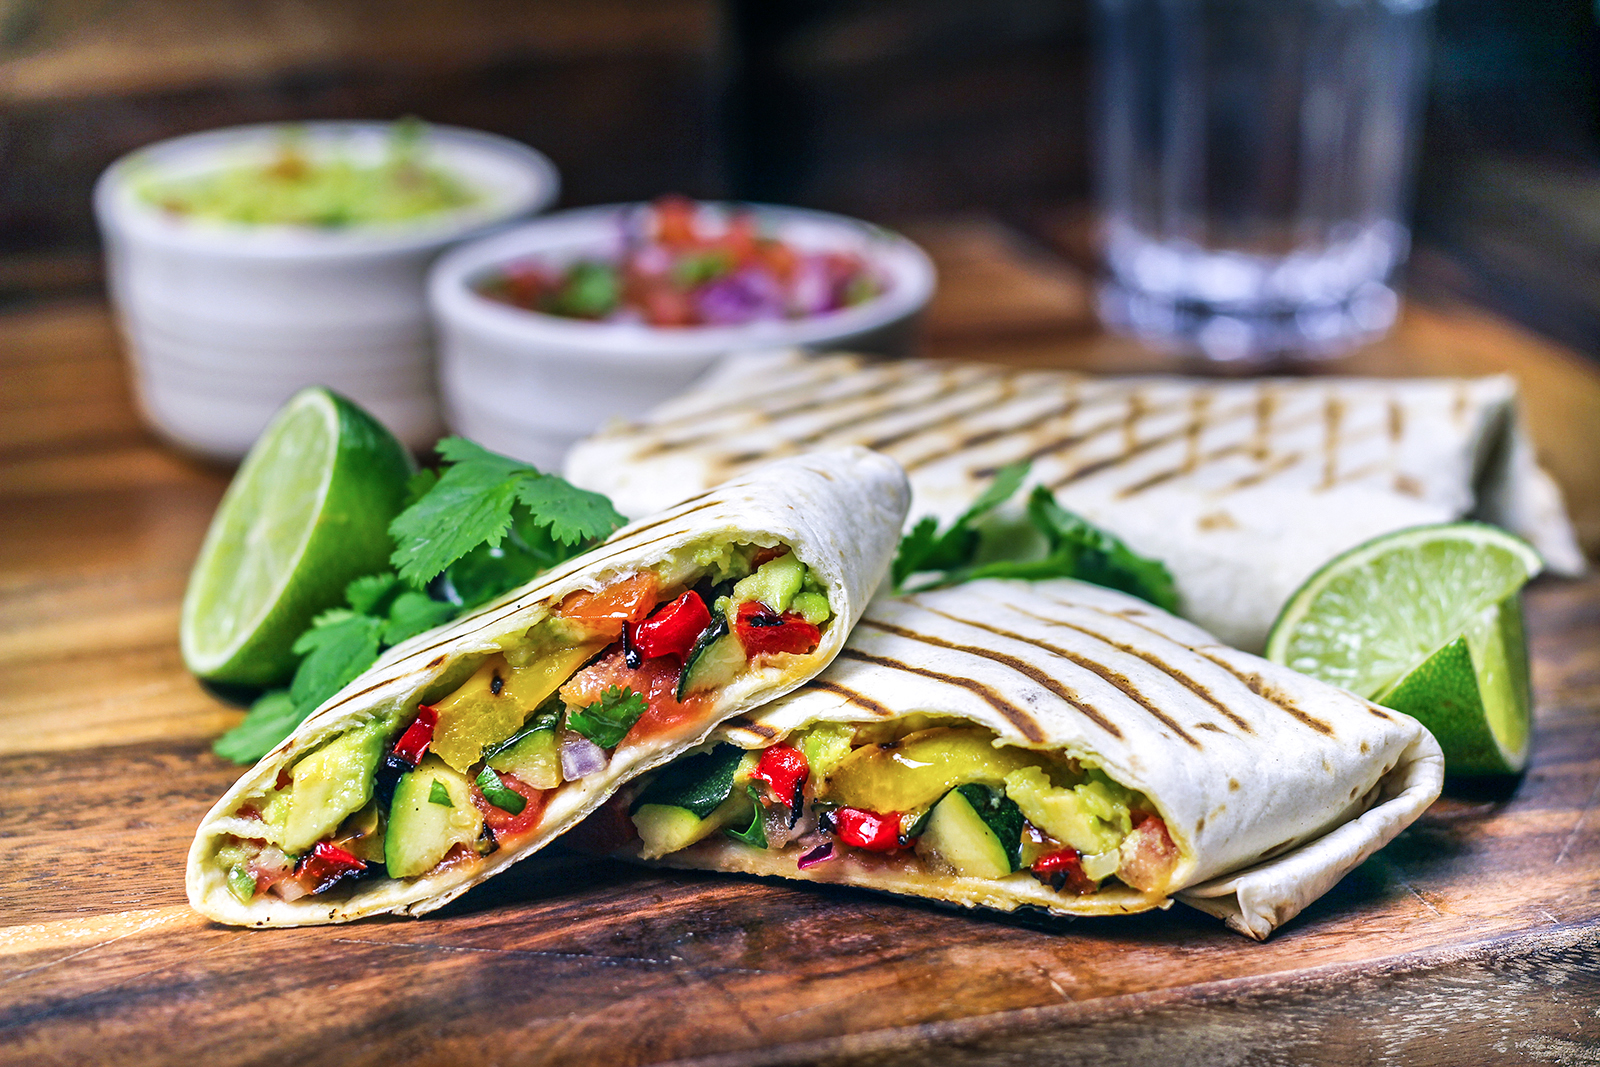 Grilled vegetable wraps with salsa and guacamole recipe bbc food forumfinder Image collections